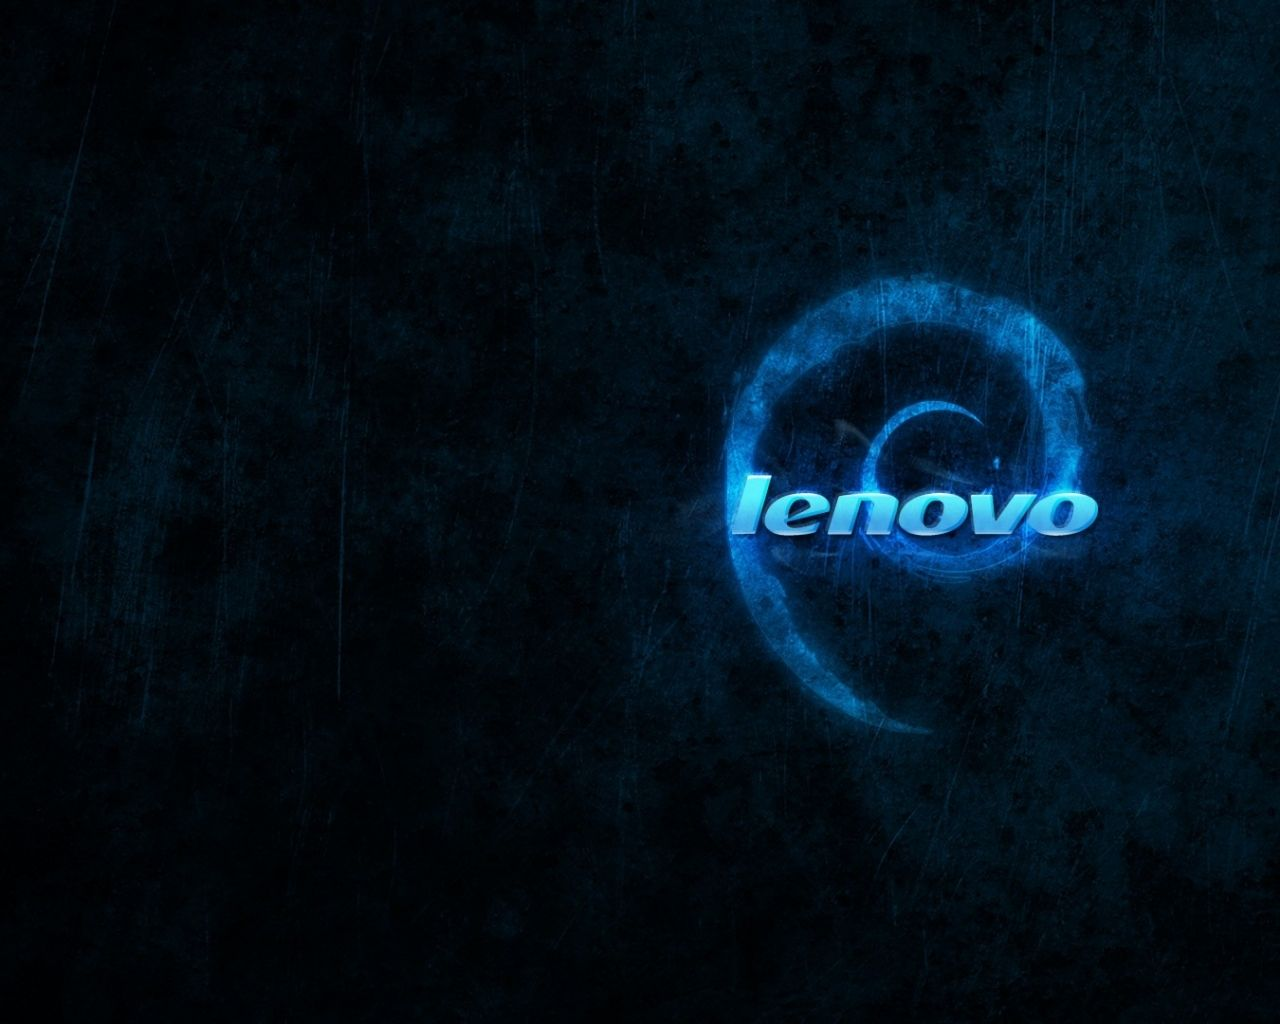 Download Free Modern Lenovo The Wallpapers Px Hd 1050656